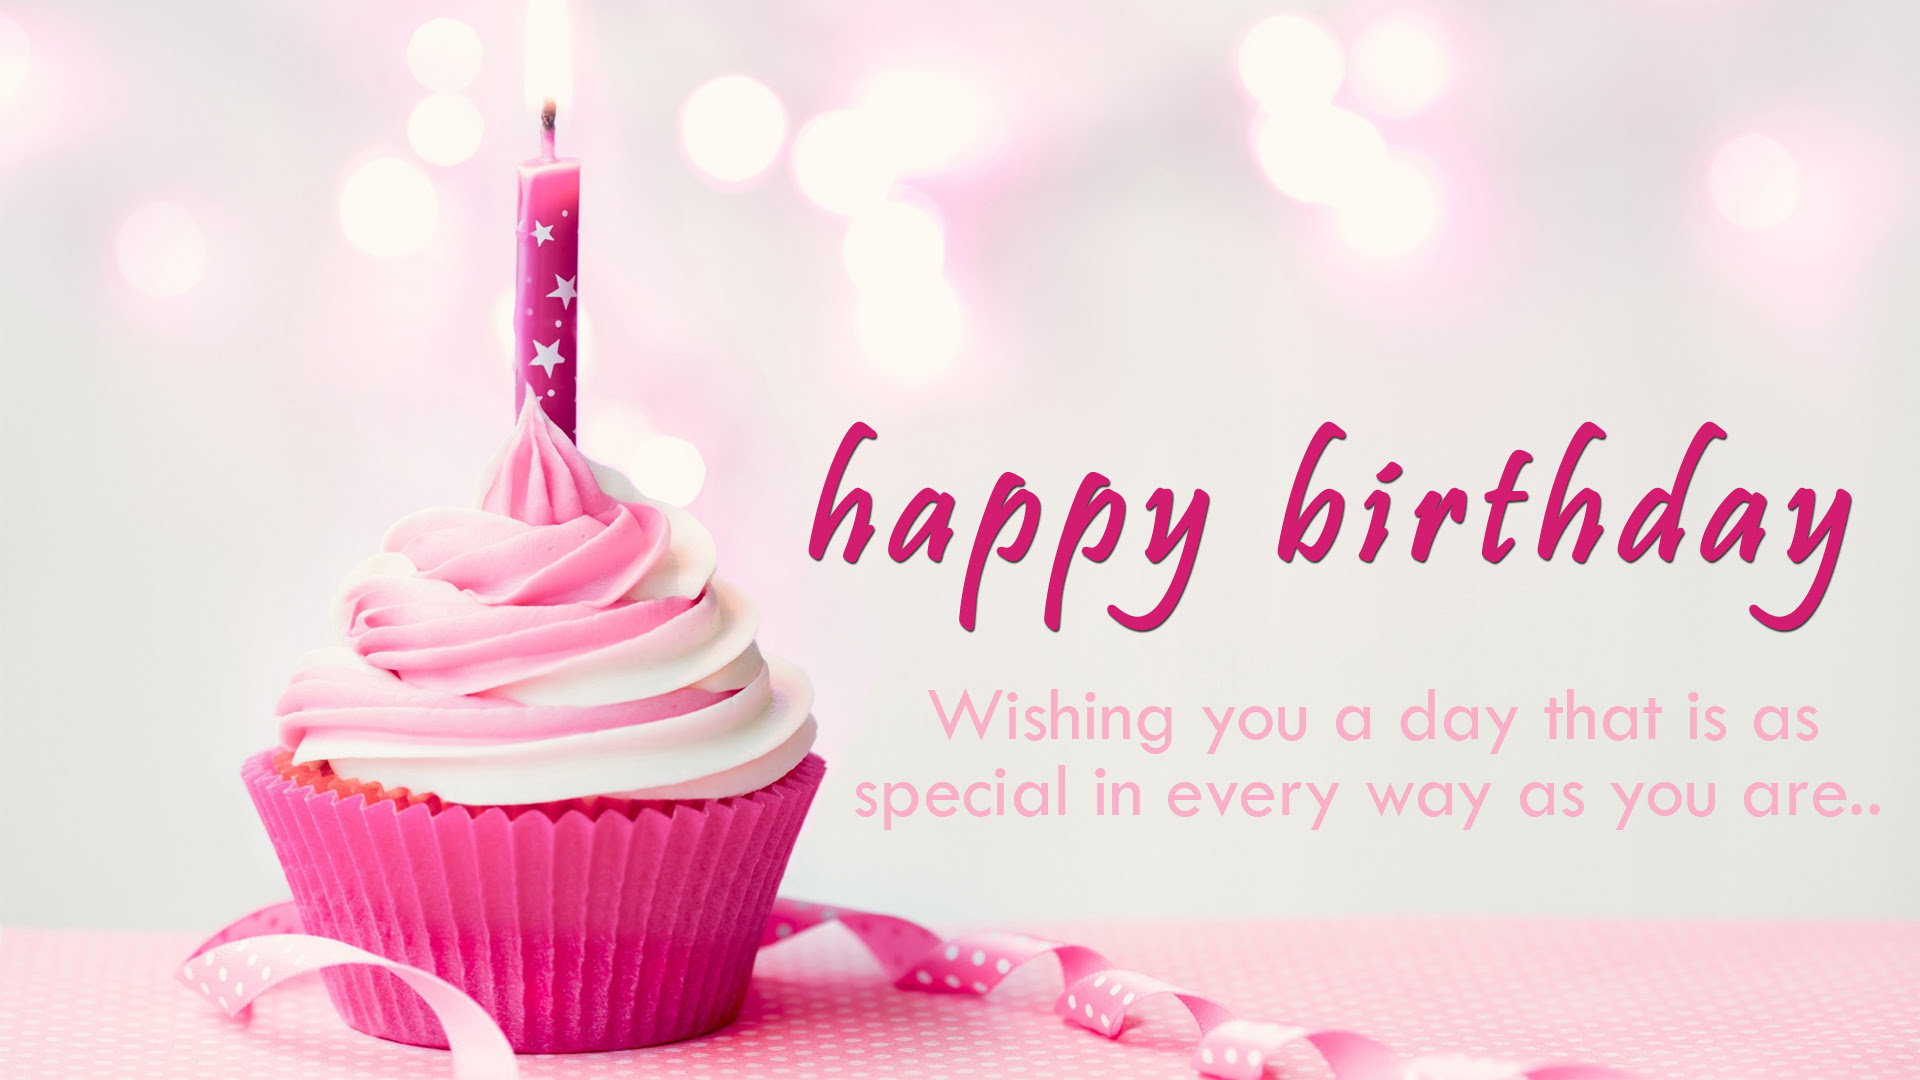 Happy Birthday Wishes Greeting Hd Wallpapers Background Hd Wallpapers